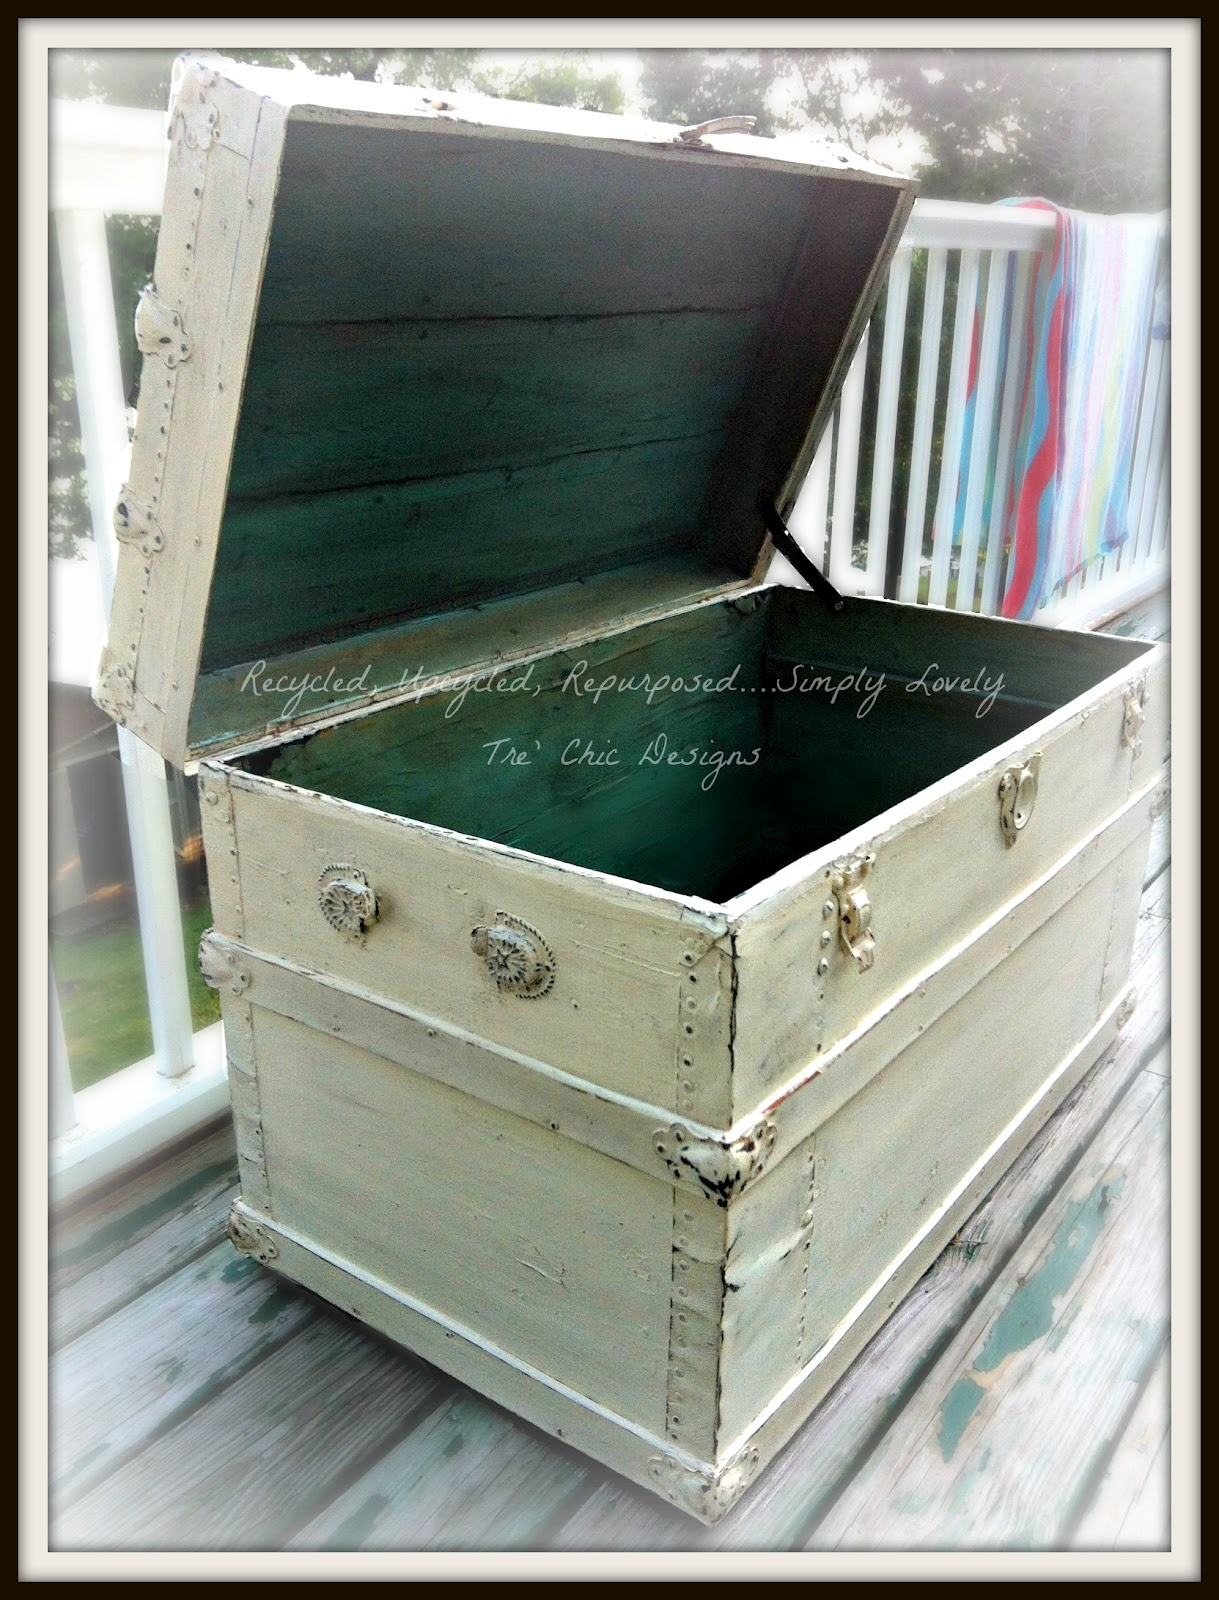 Recycled upcycled repurposed simply lovely tre 39 chic - How to paint an old trunk ...